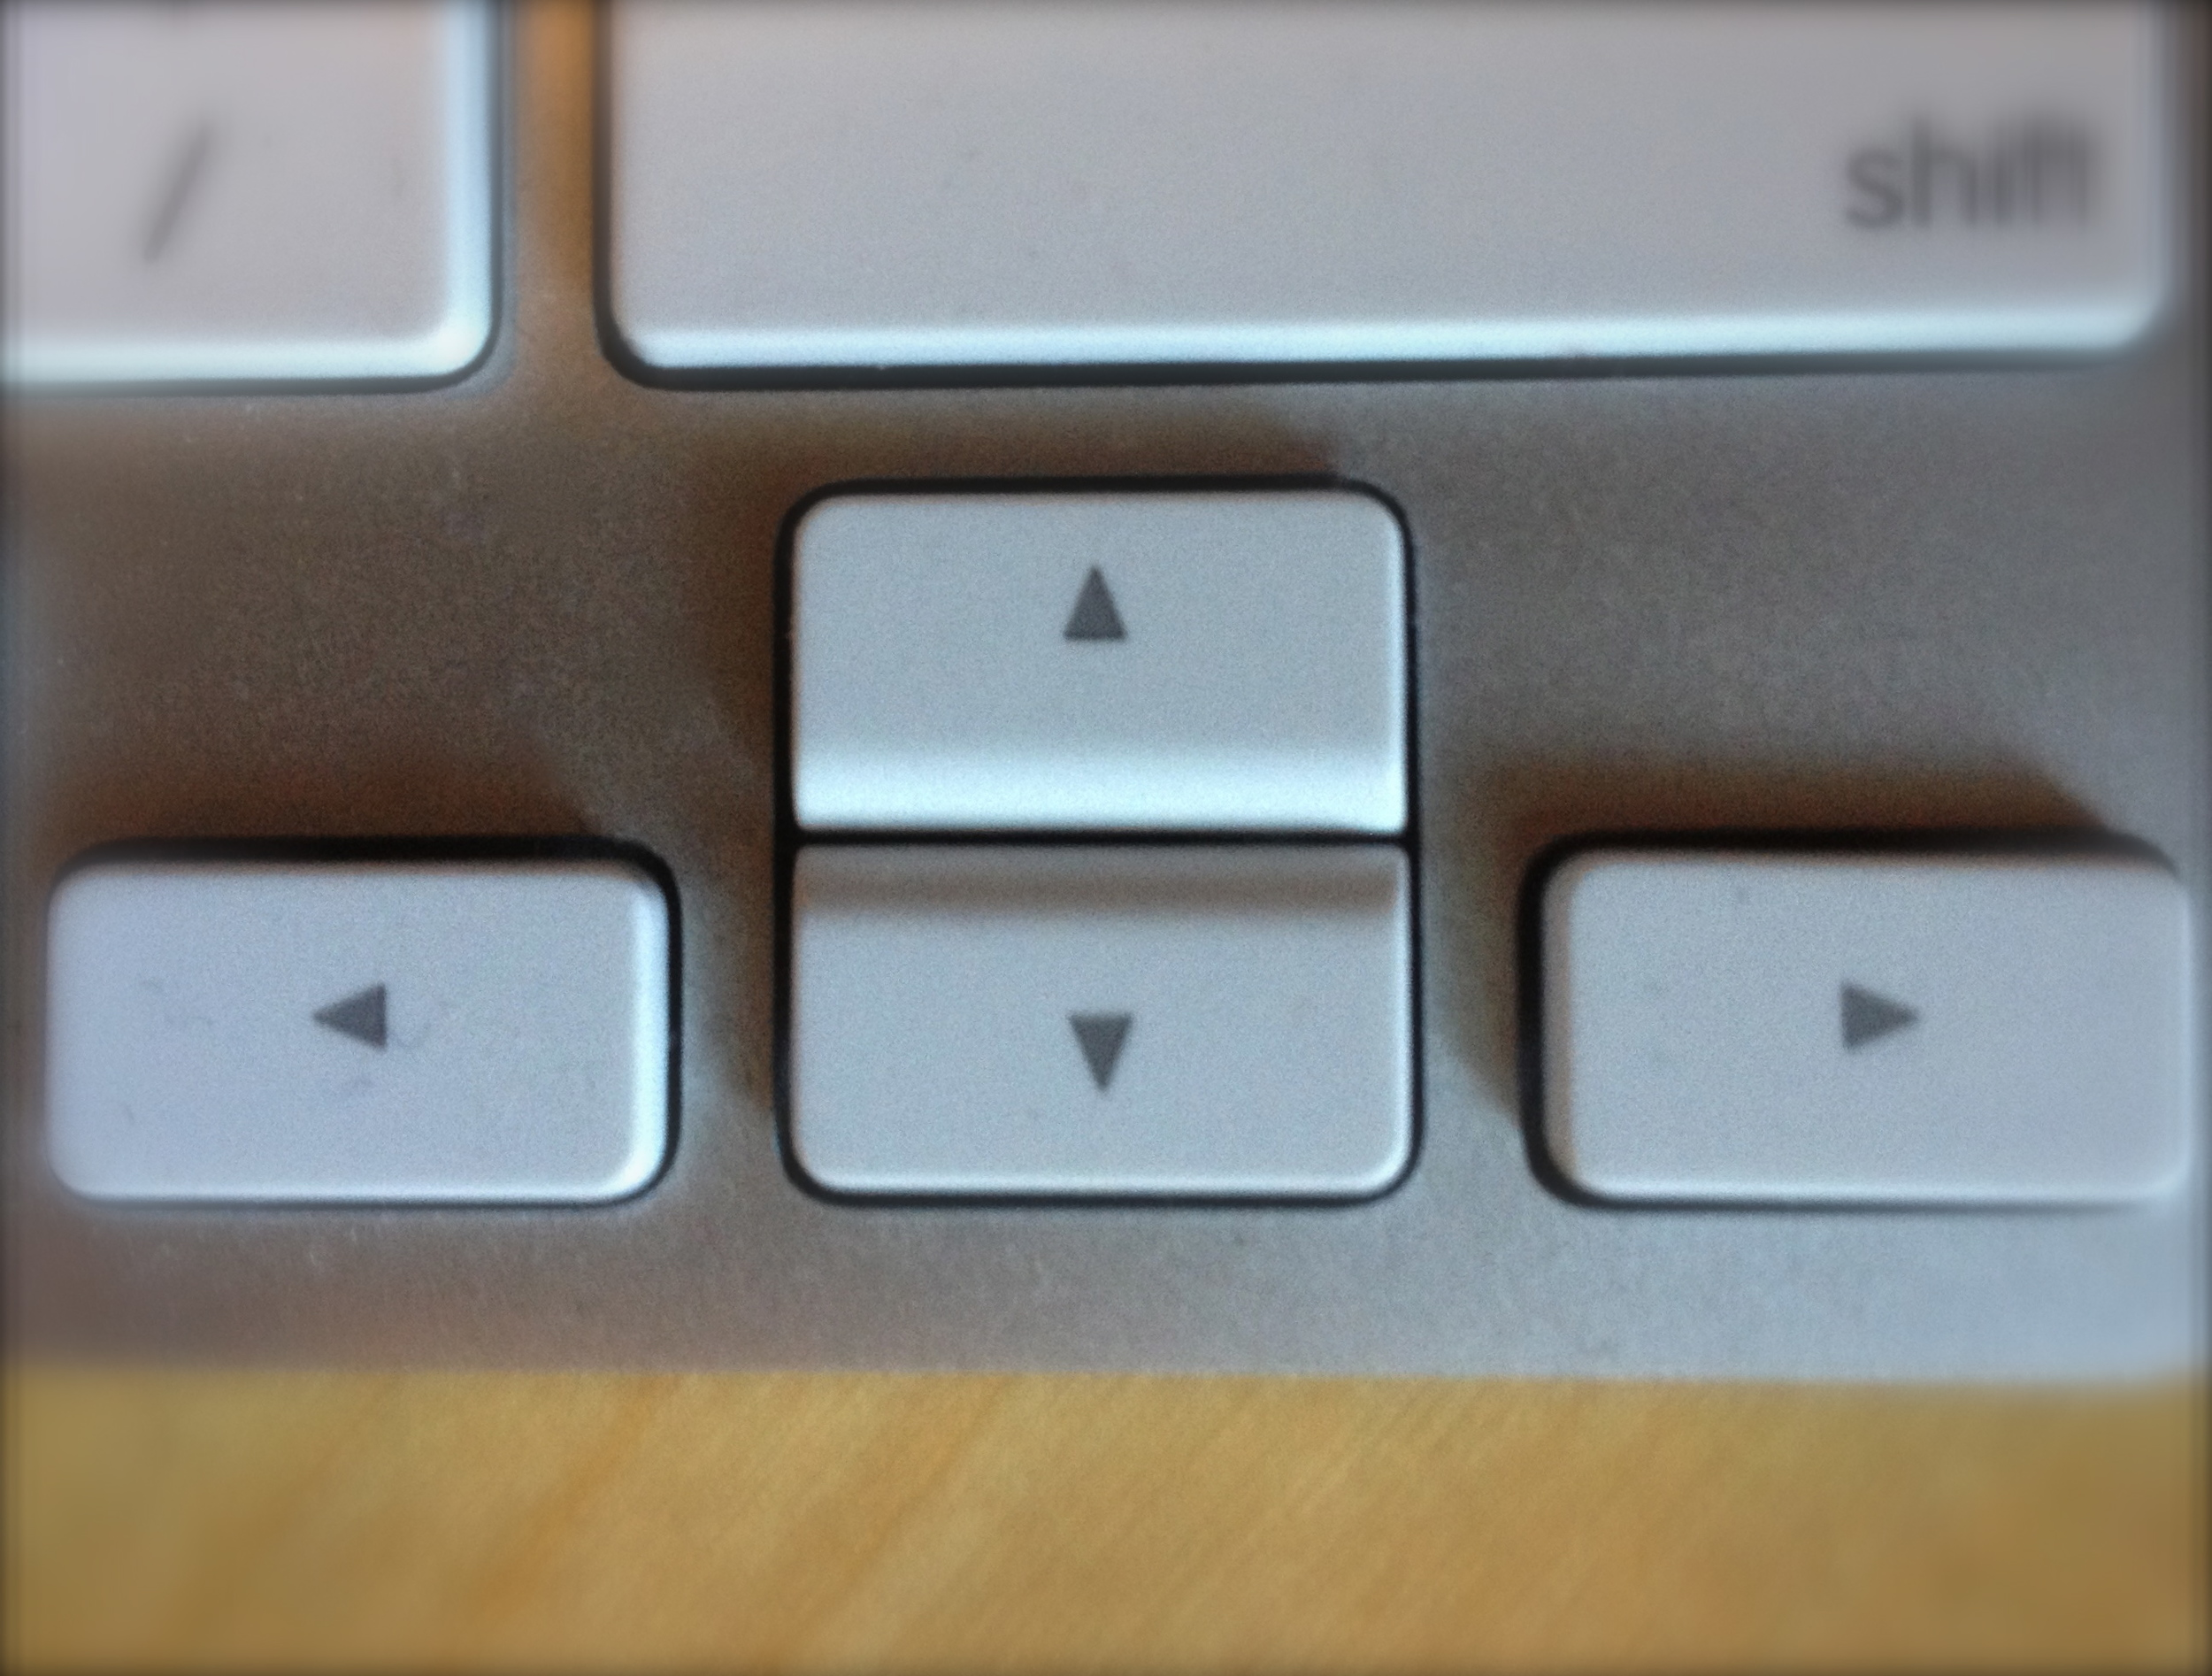 Close up of the arrow keys on an Apple Wireless Keyboard